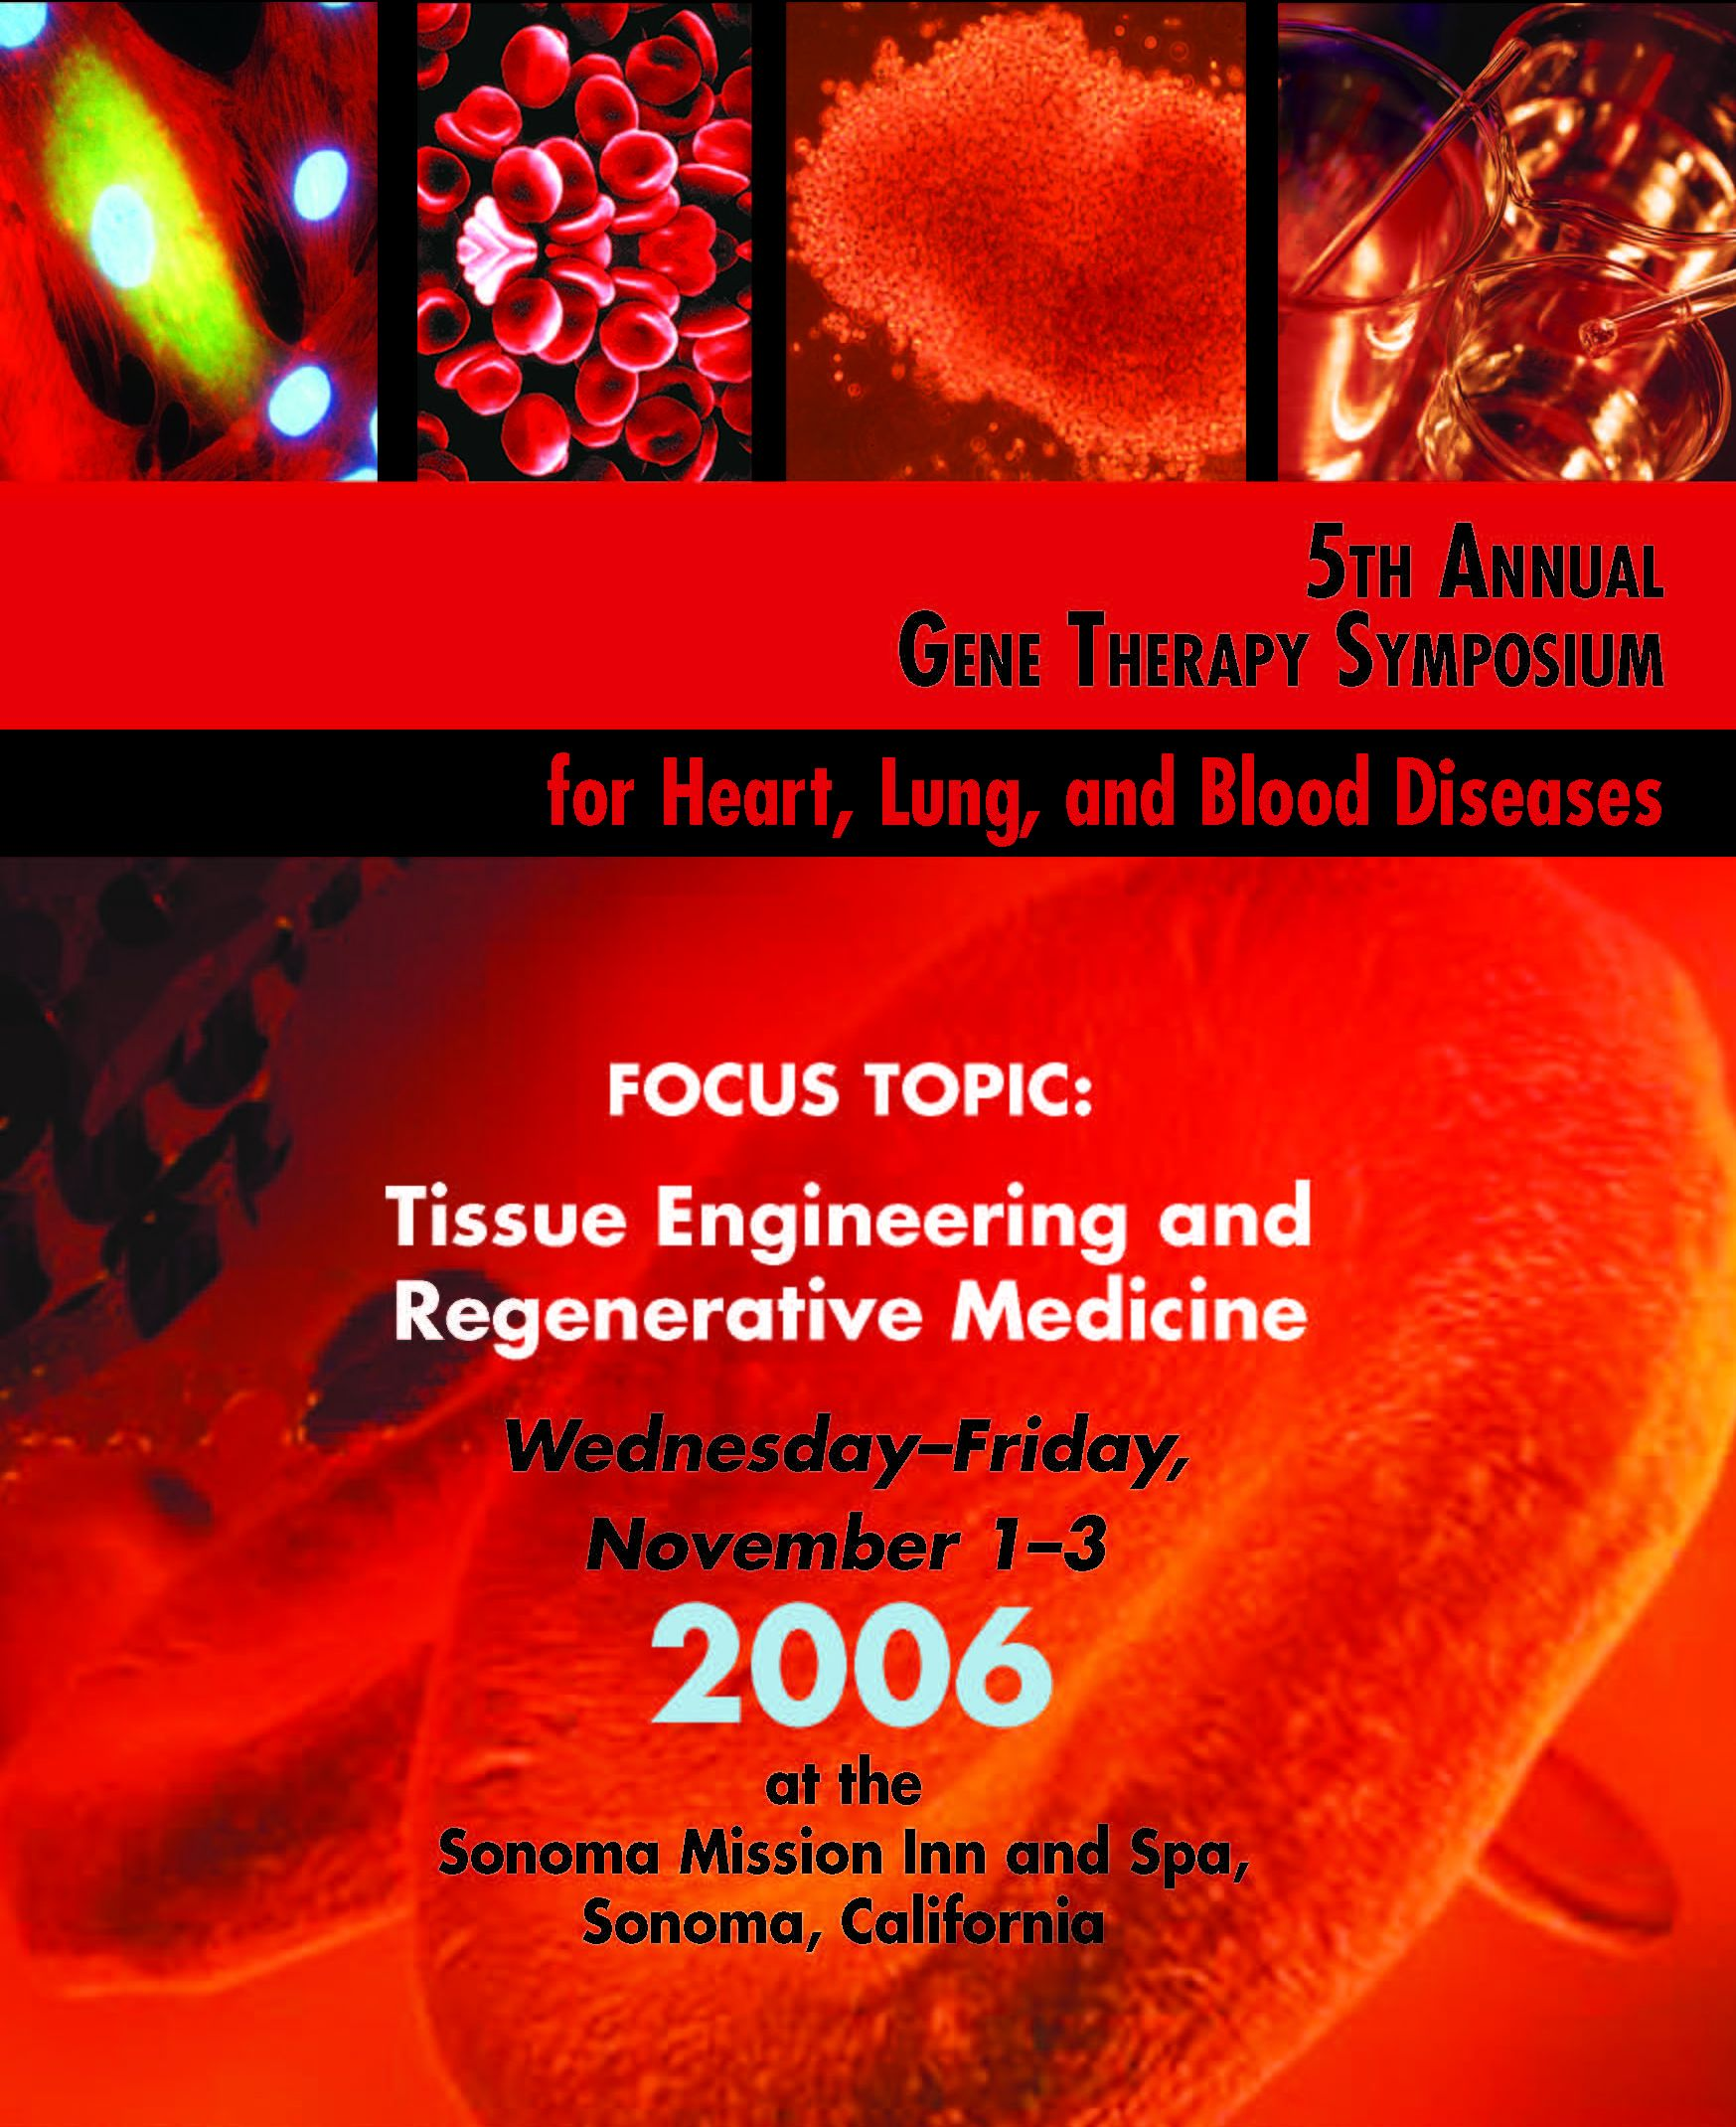 5th Annual Gene Therapy Symposium Poster